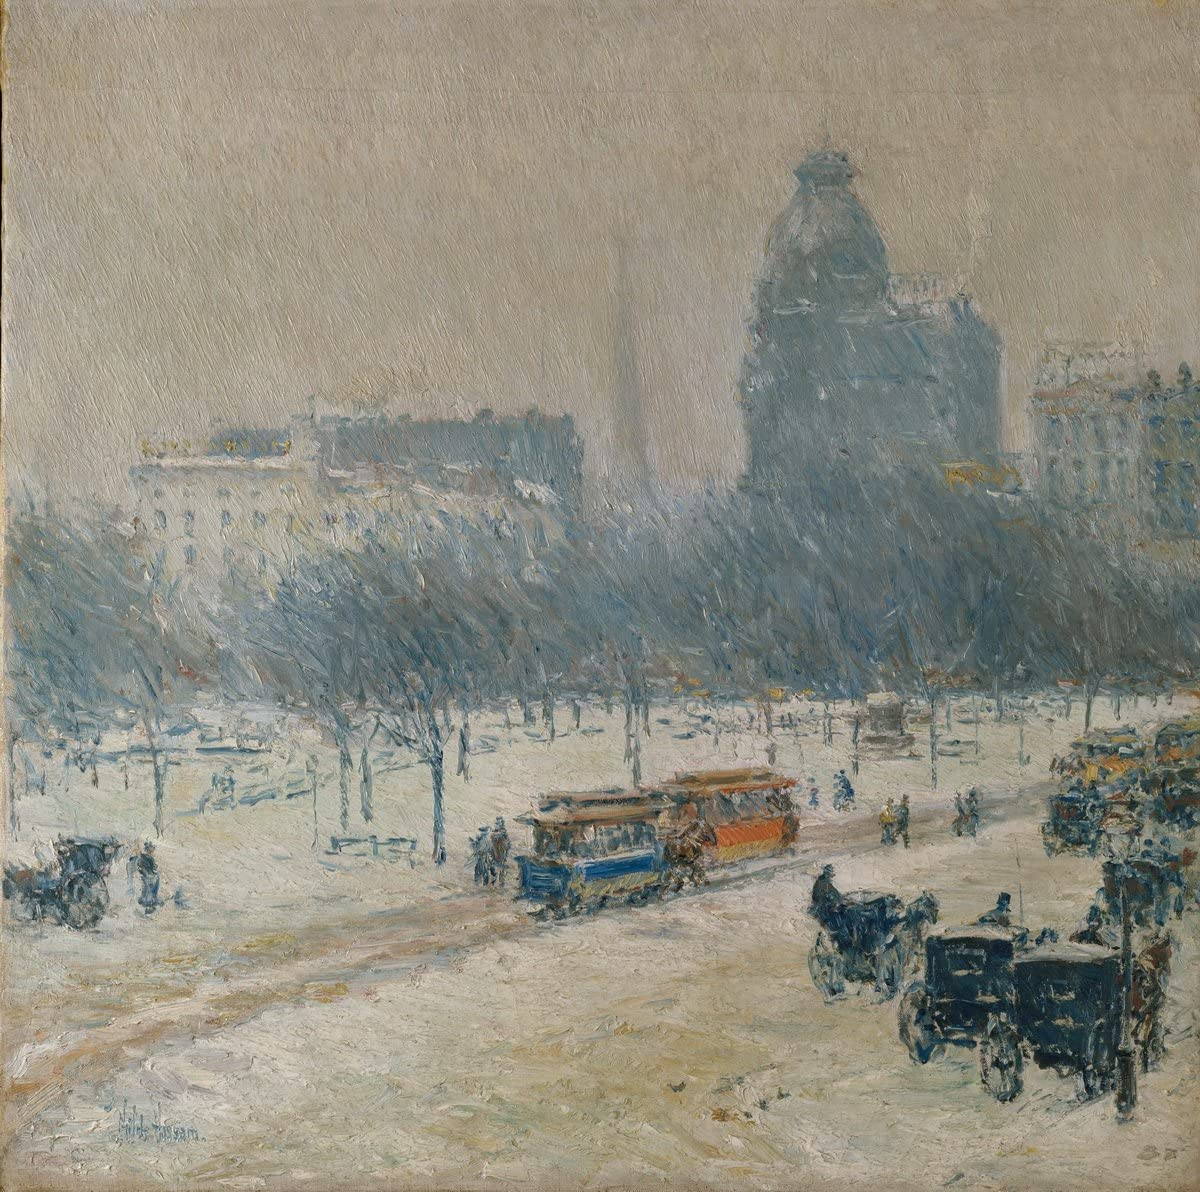 Winter in Union Square by Childe Hassam Giclee Fine ArtPrint Repro on Canvas